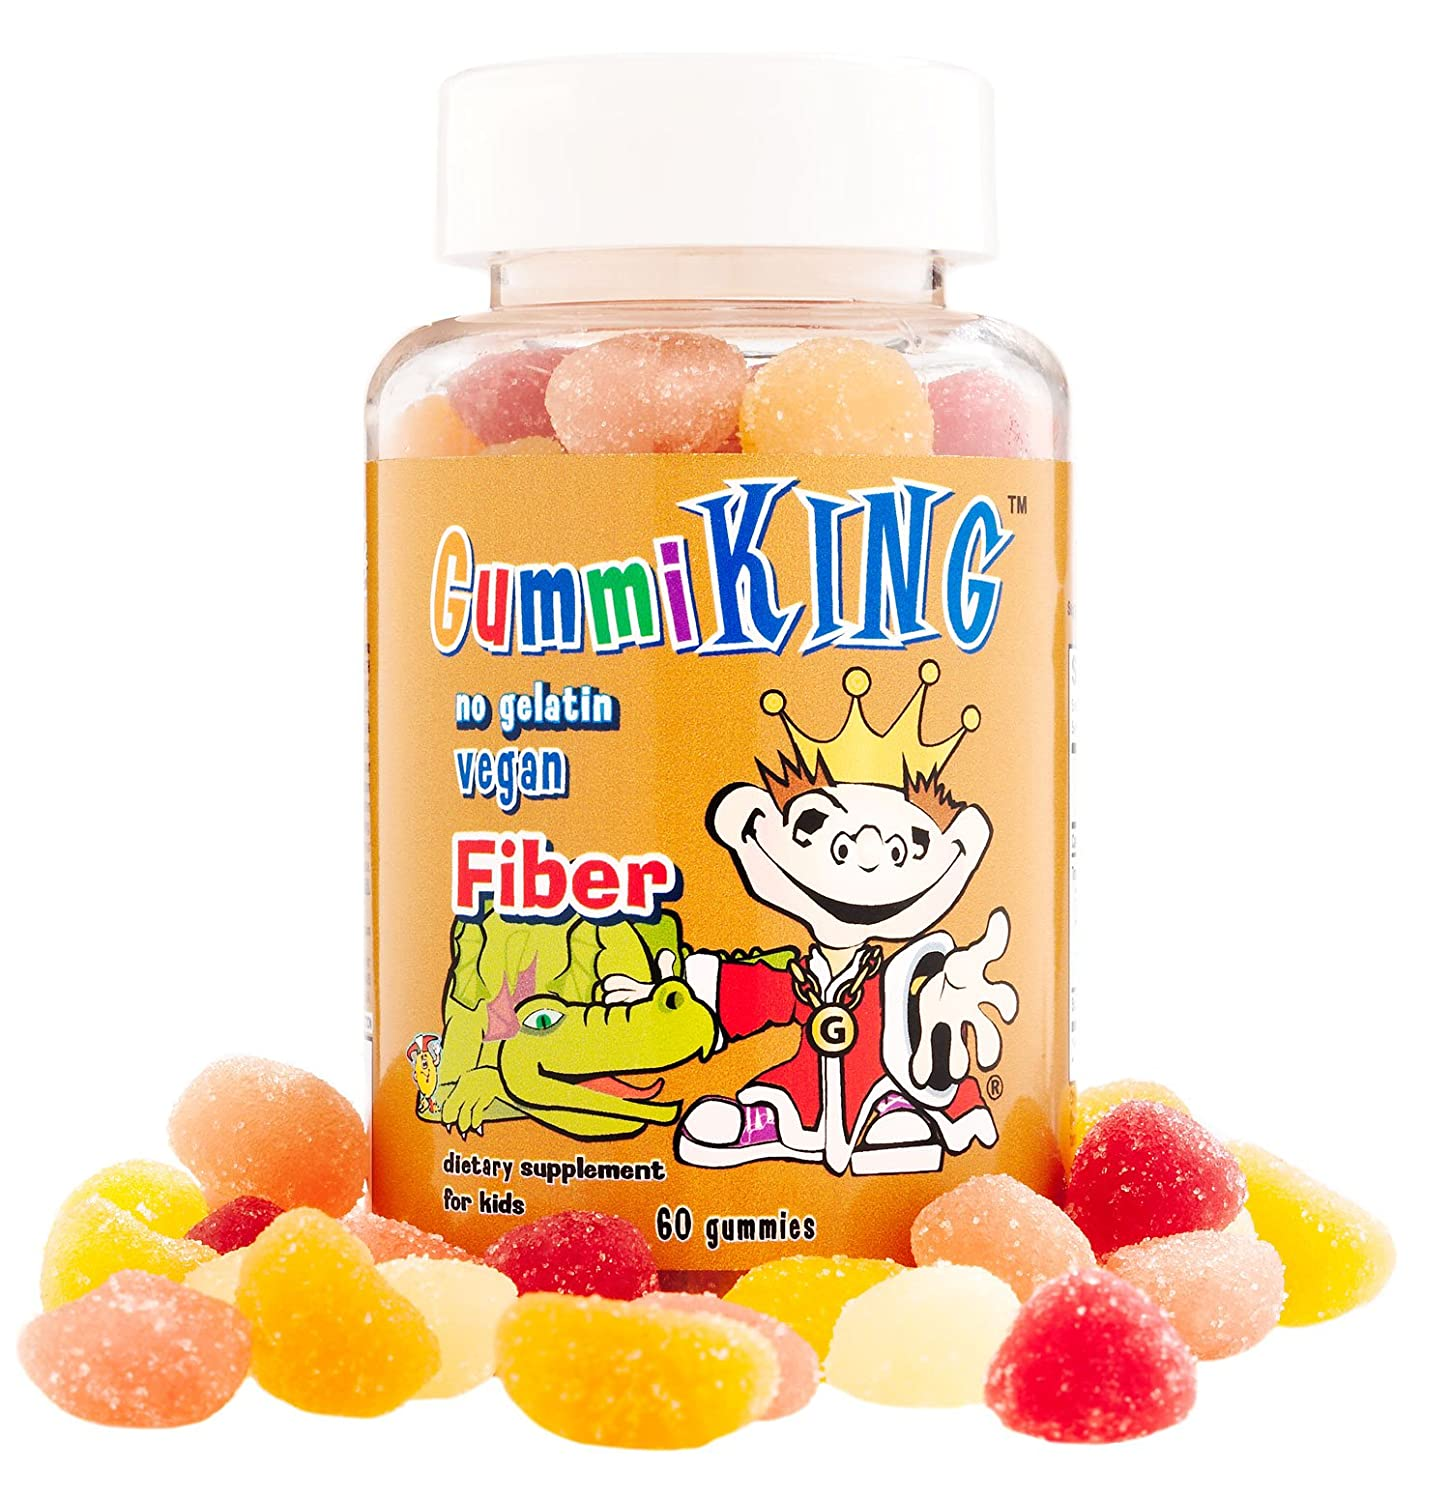 Gummi King Fiber Supplement, Strawberry